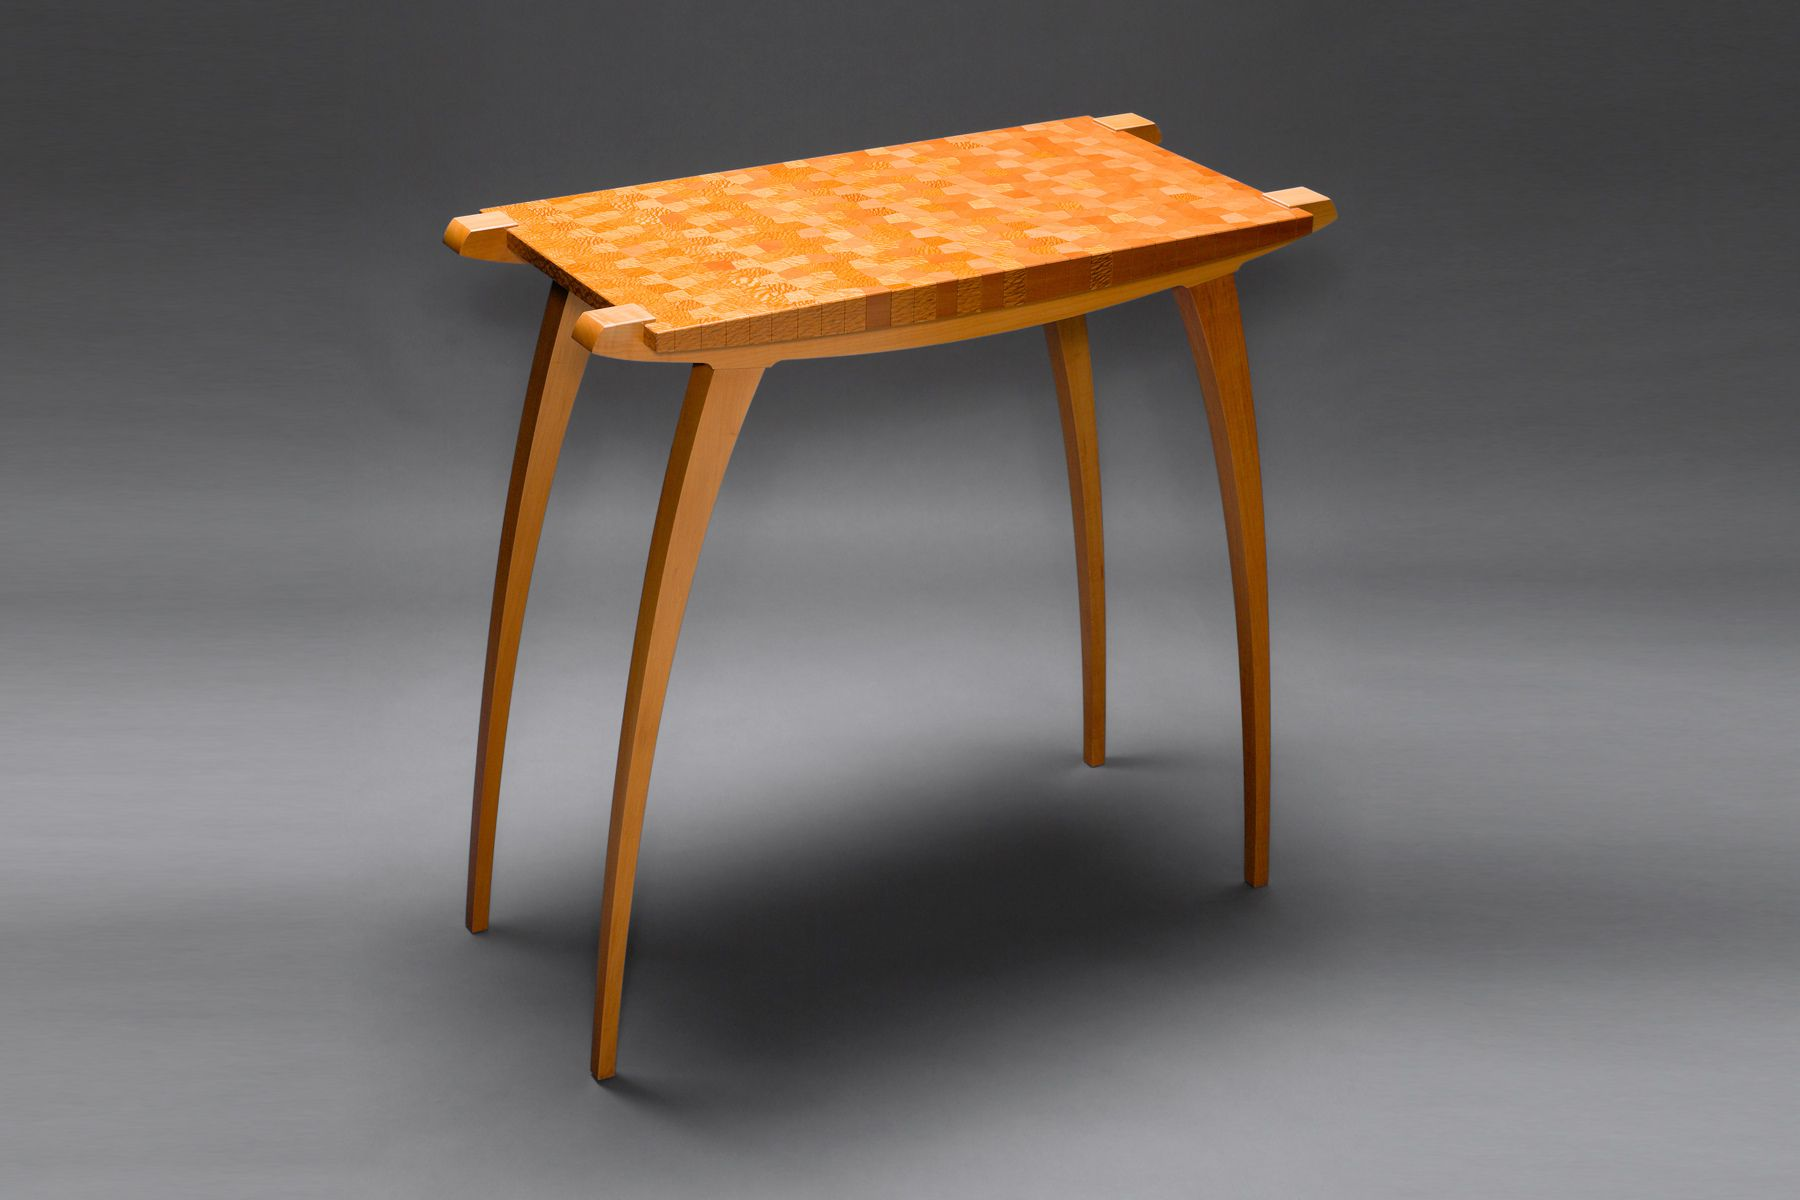 1aaron_levine_contemporary_modern_studio_furniture_maker_wood_woodworker_art_artist_northwest_parquetry_tessellation_entry_table_decorative_lacewood_pear_detail2.jpg